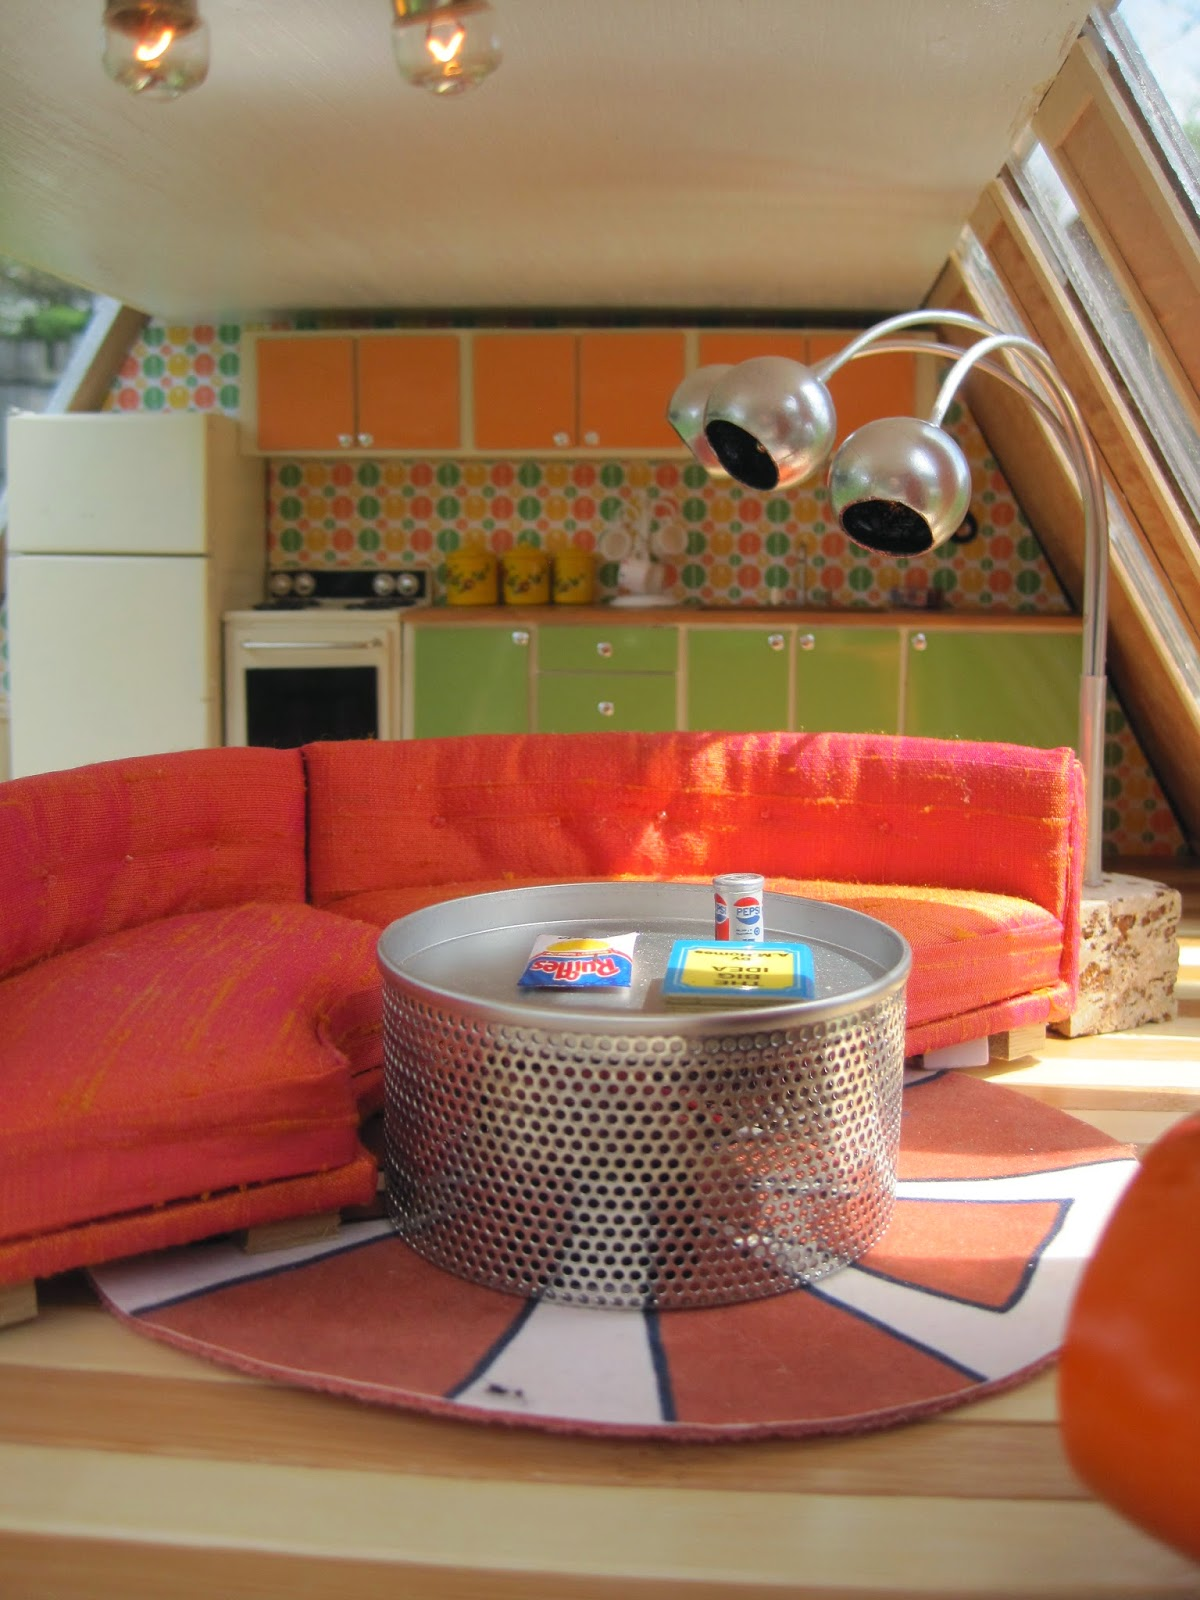 Urbanite Sofa Brown What Colour Curtains Mini Mod Pod Undersized The Groovy 70 39spad Is